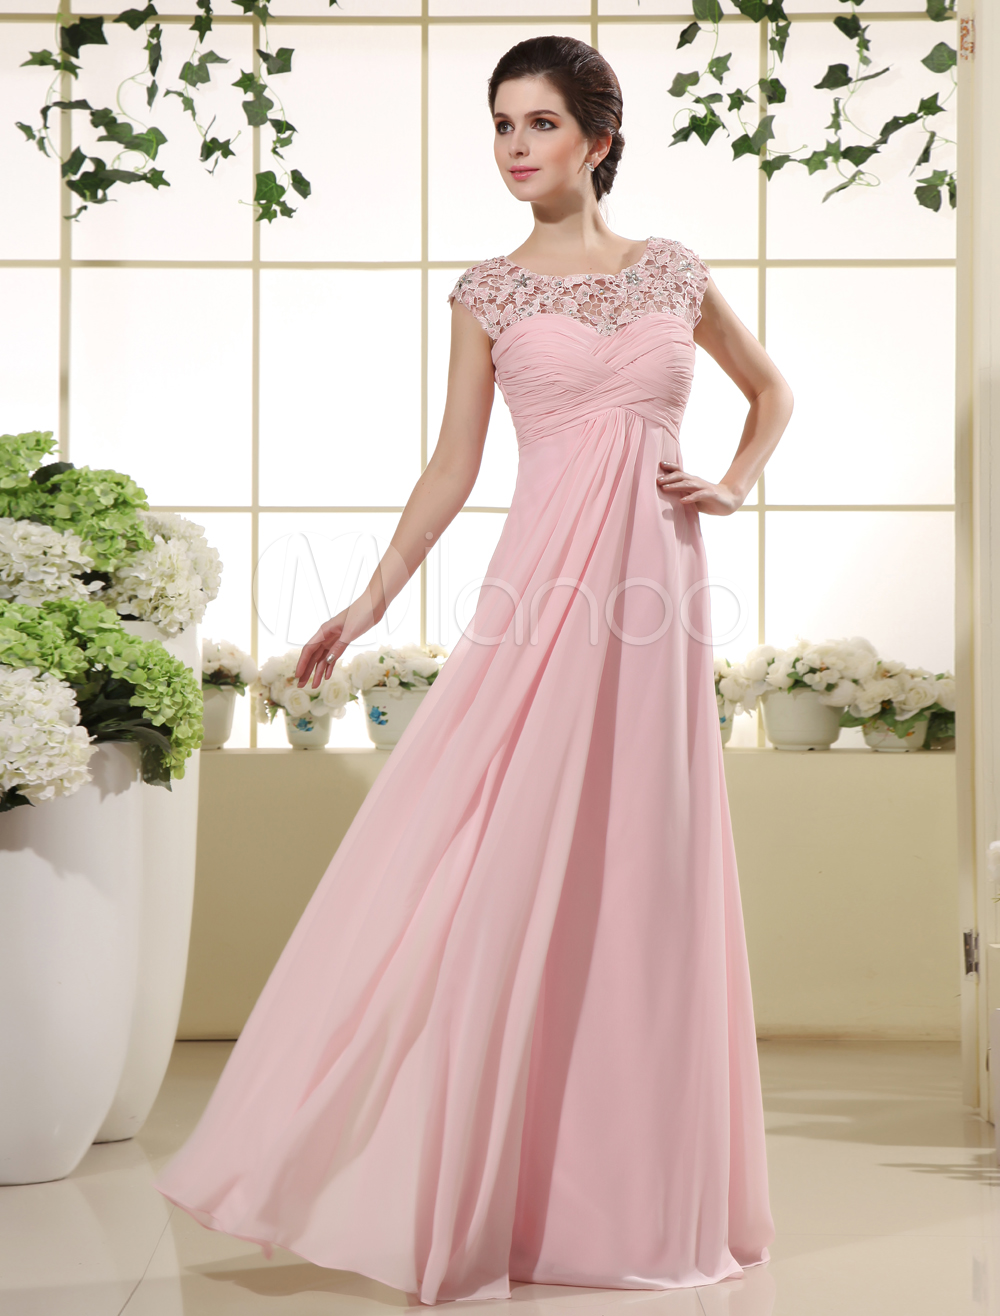 Lace Panel Ruched Evening Dress | Occasion Dress, Evening Dress ...